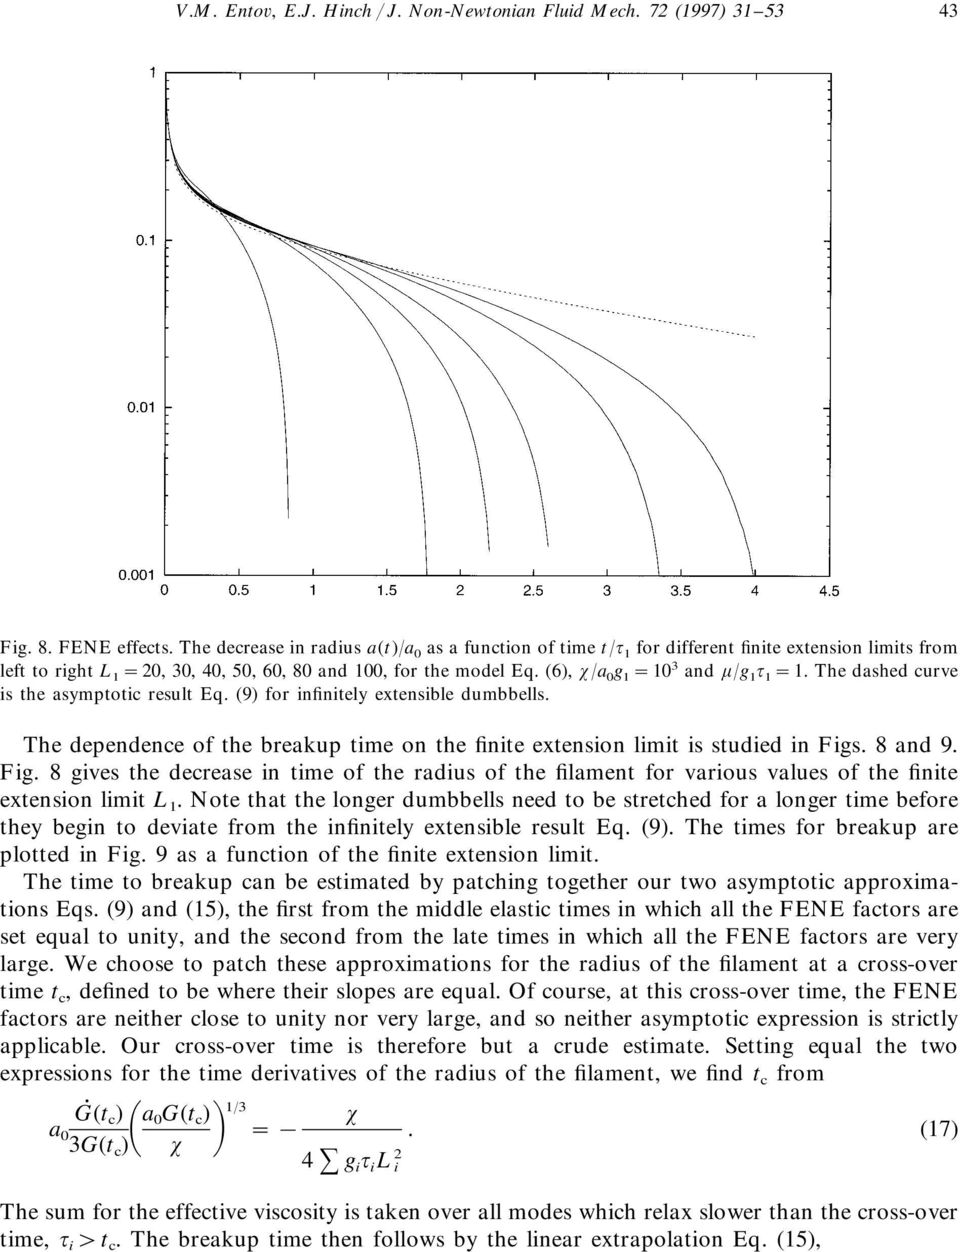 The dashed curve s the asymptotc result Eq. (9) for nfntely extensble dumbbells. The dependence of the breakup tme on the fnte extenson lmt s studed n Fgs